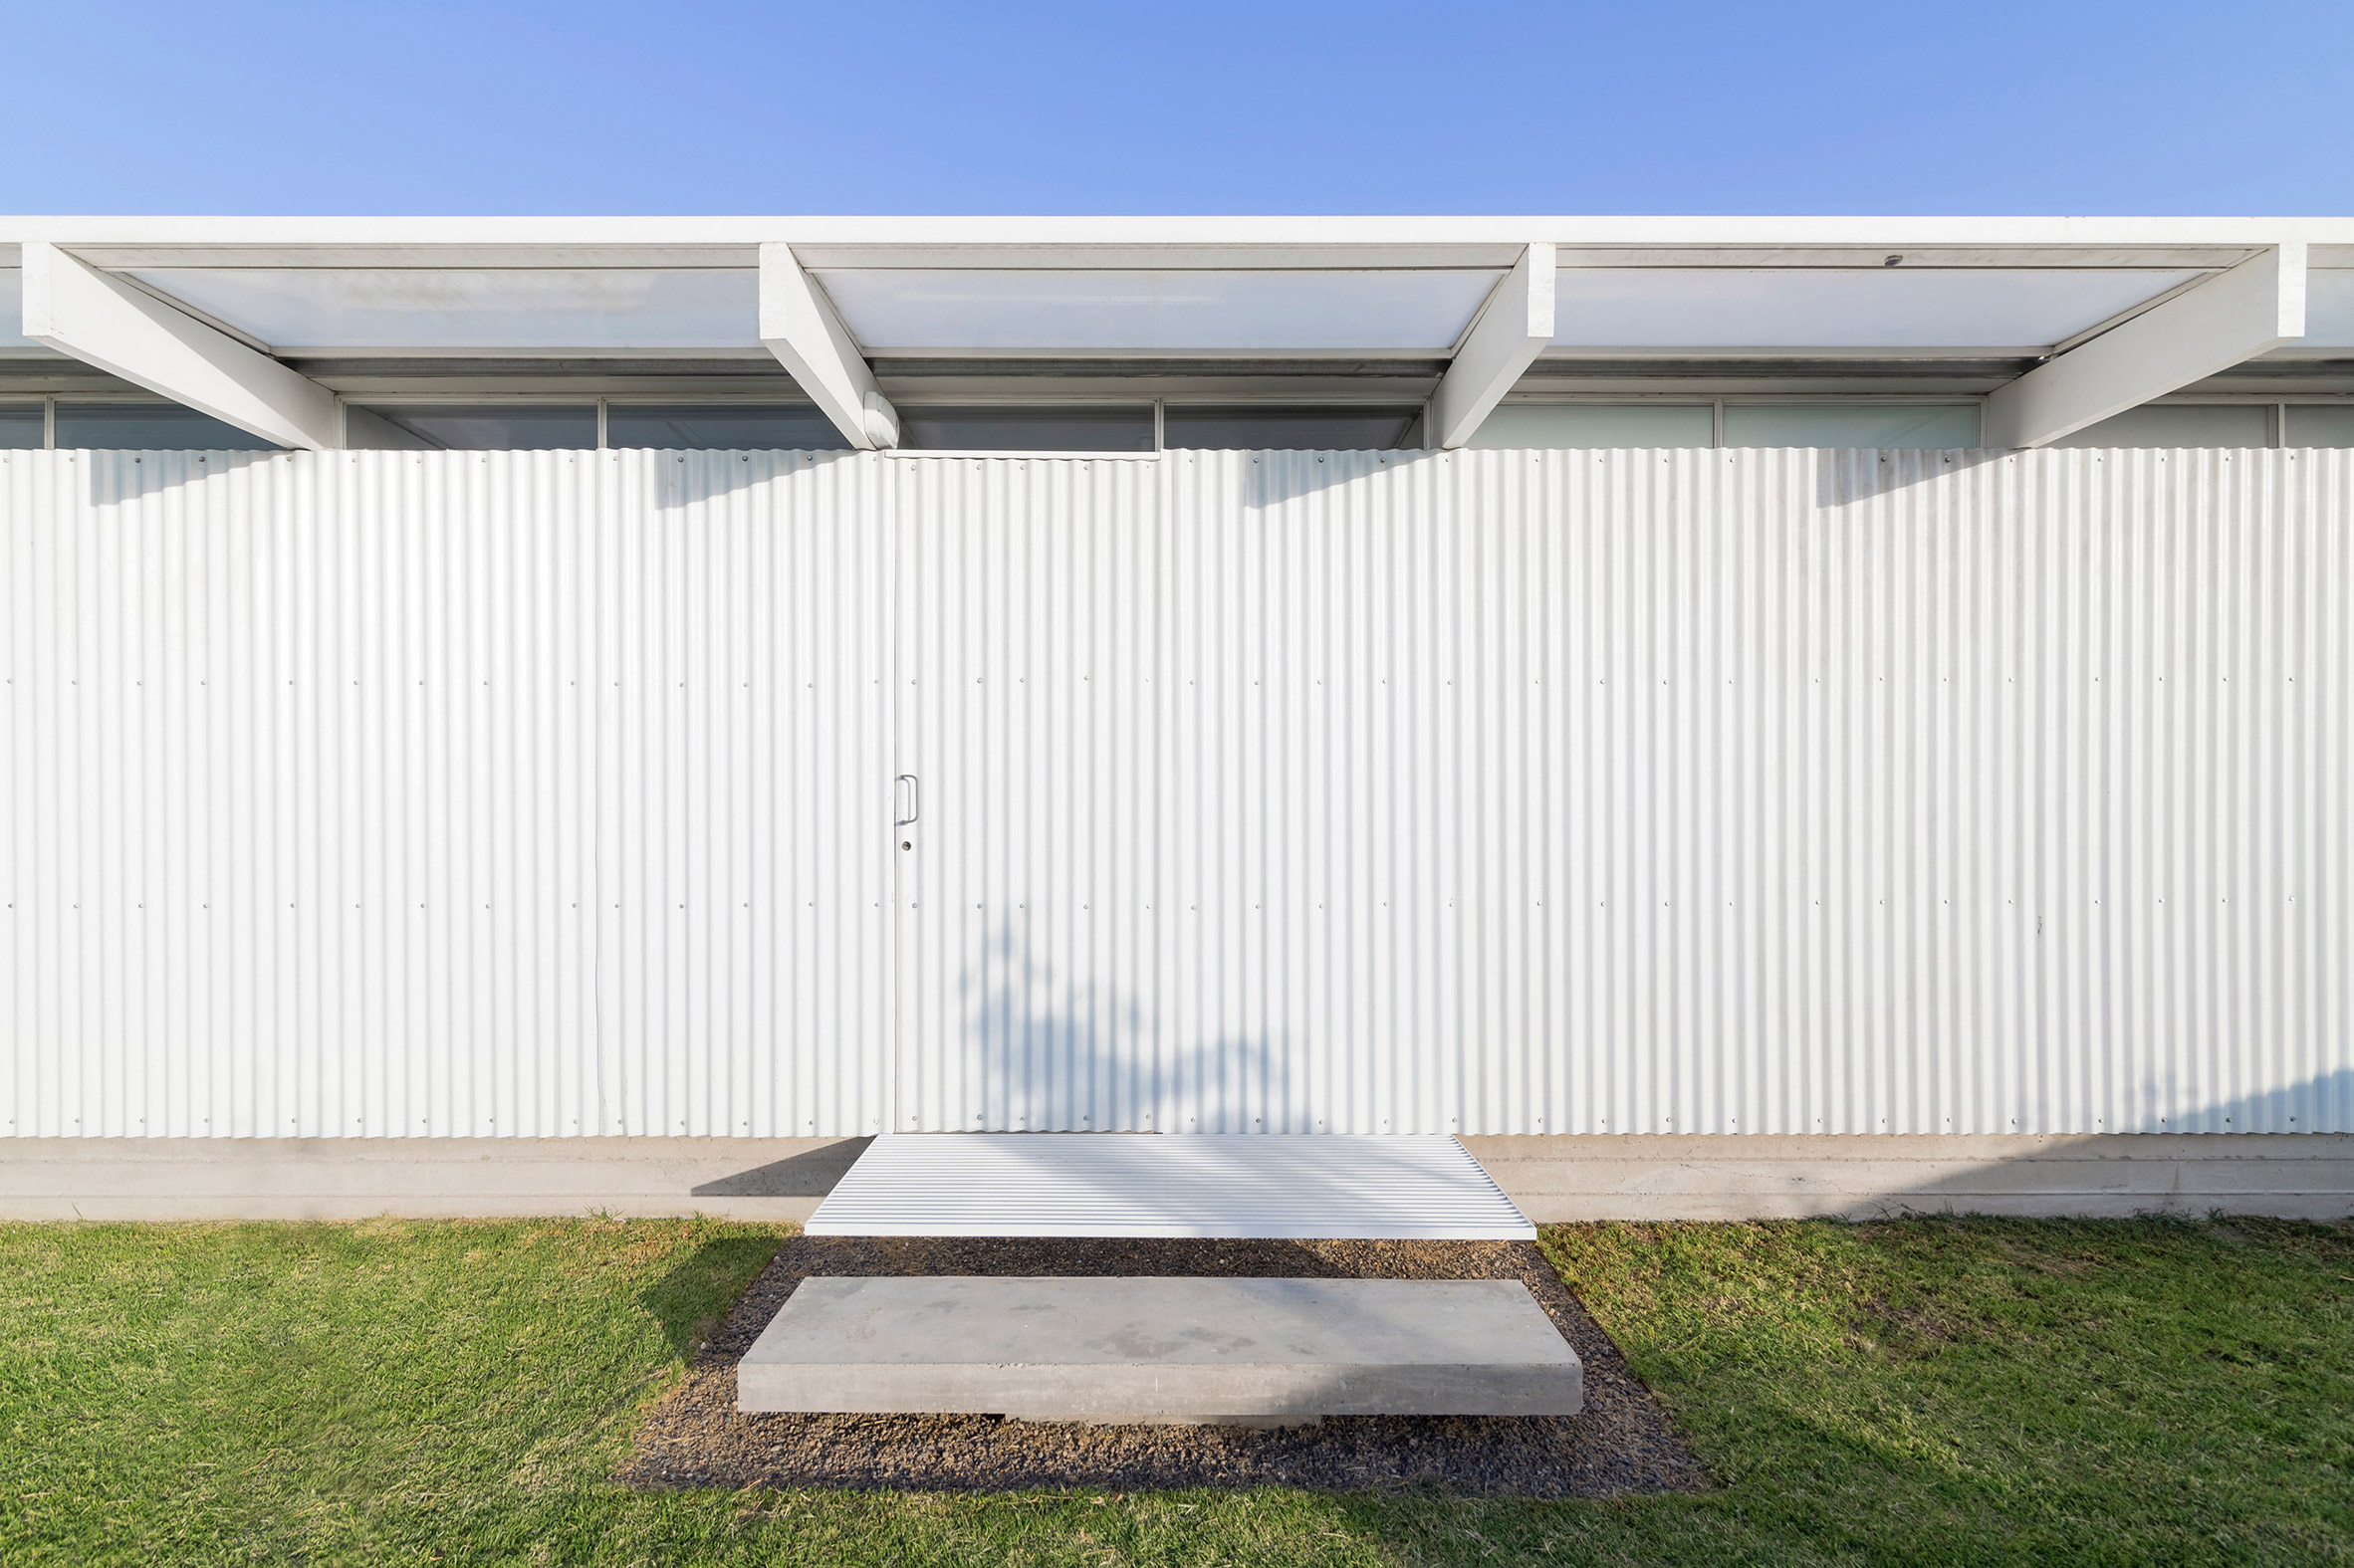 Bernardo Rosello's minimal El Maitén house in Buenos Aires is almost entirely white